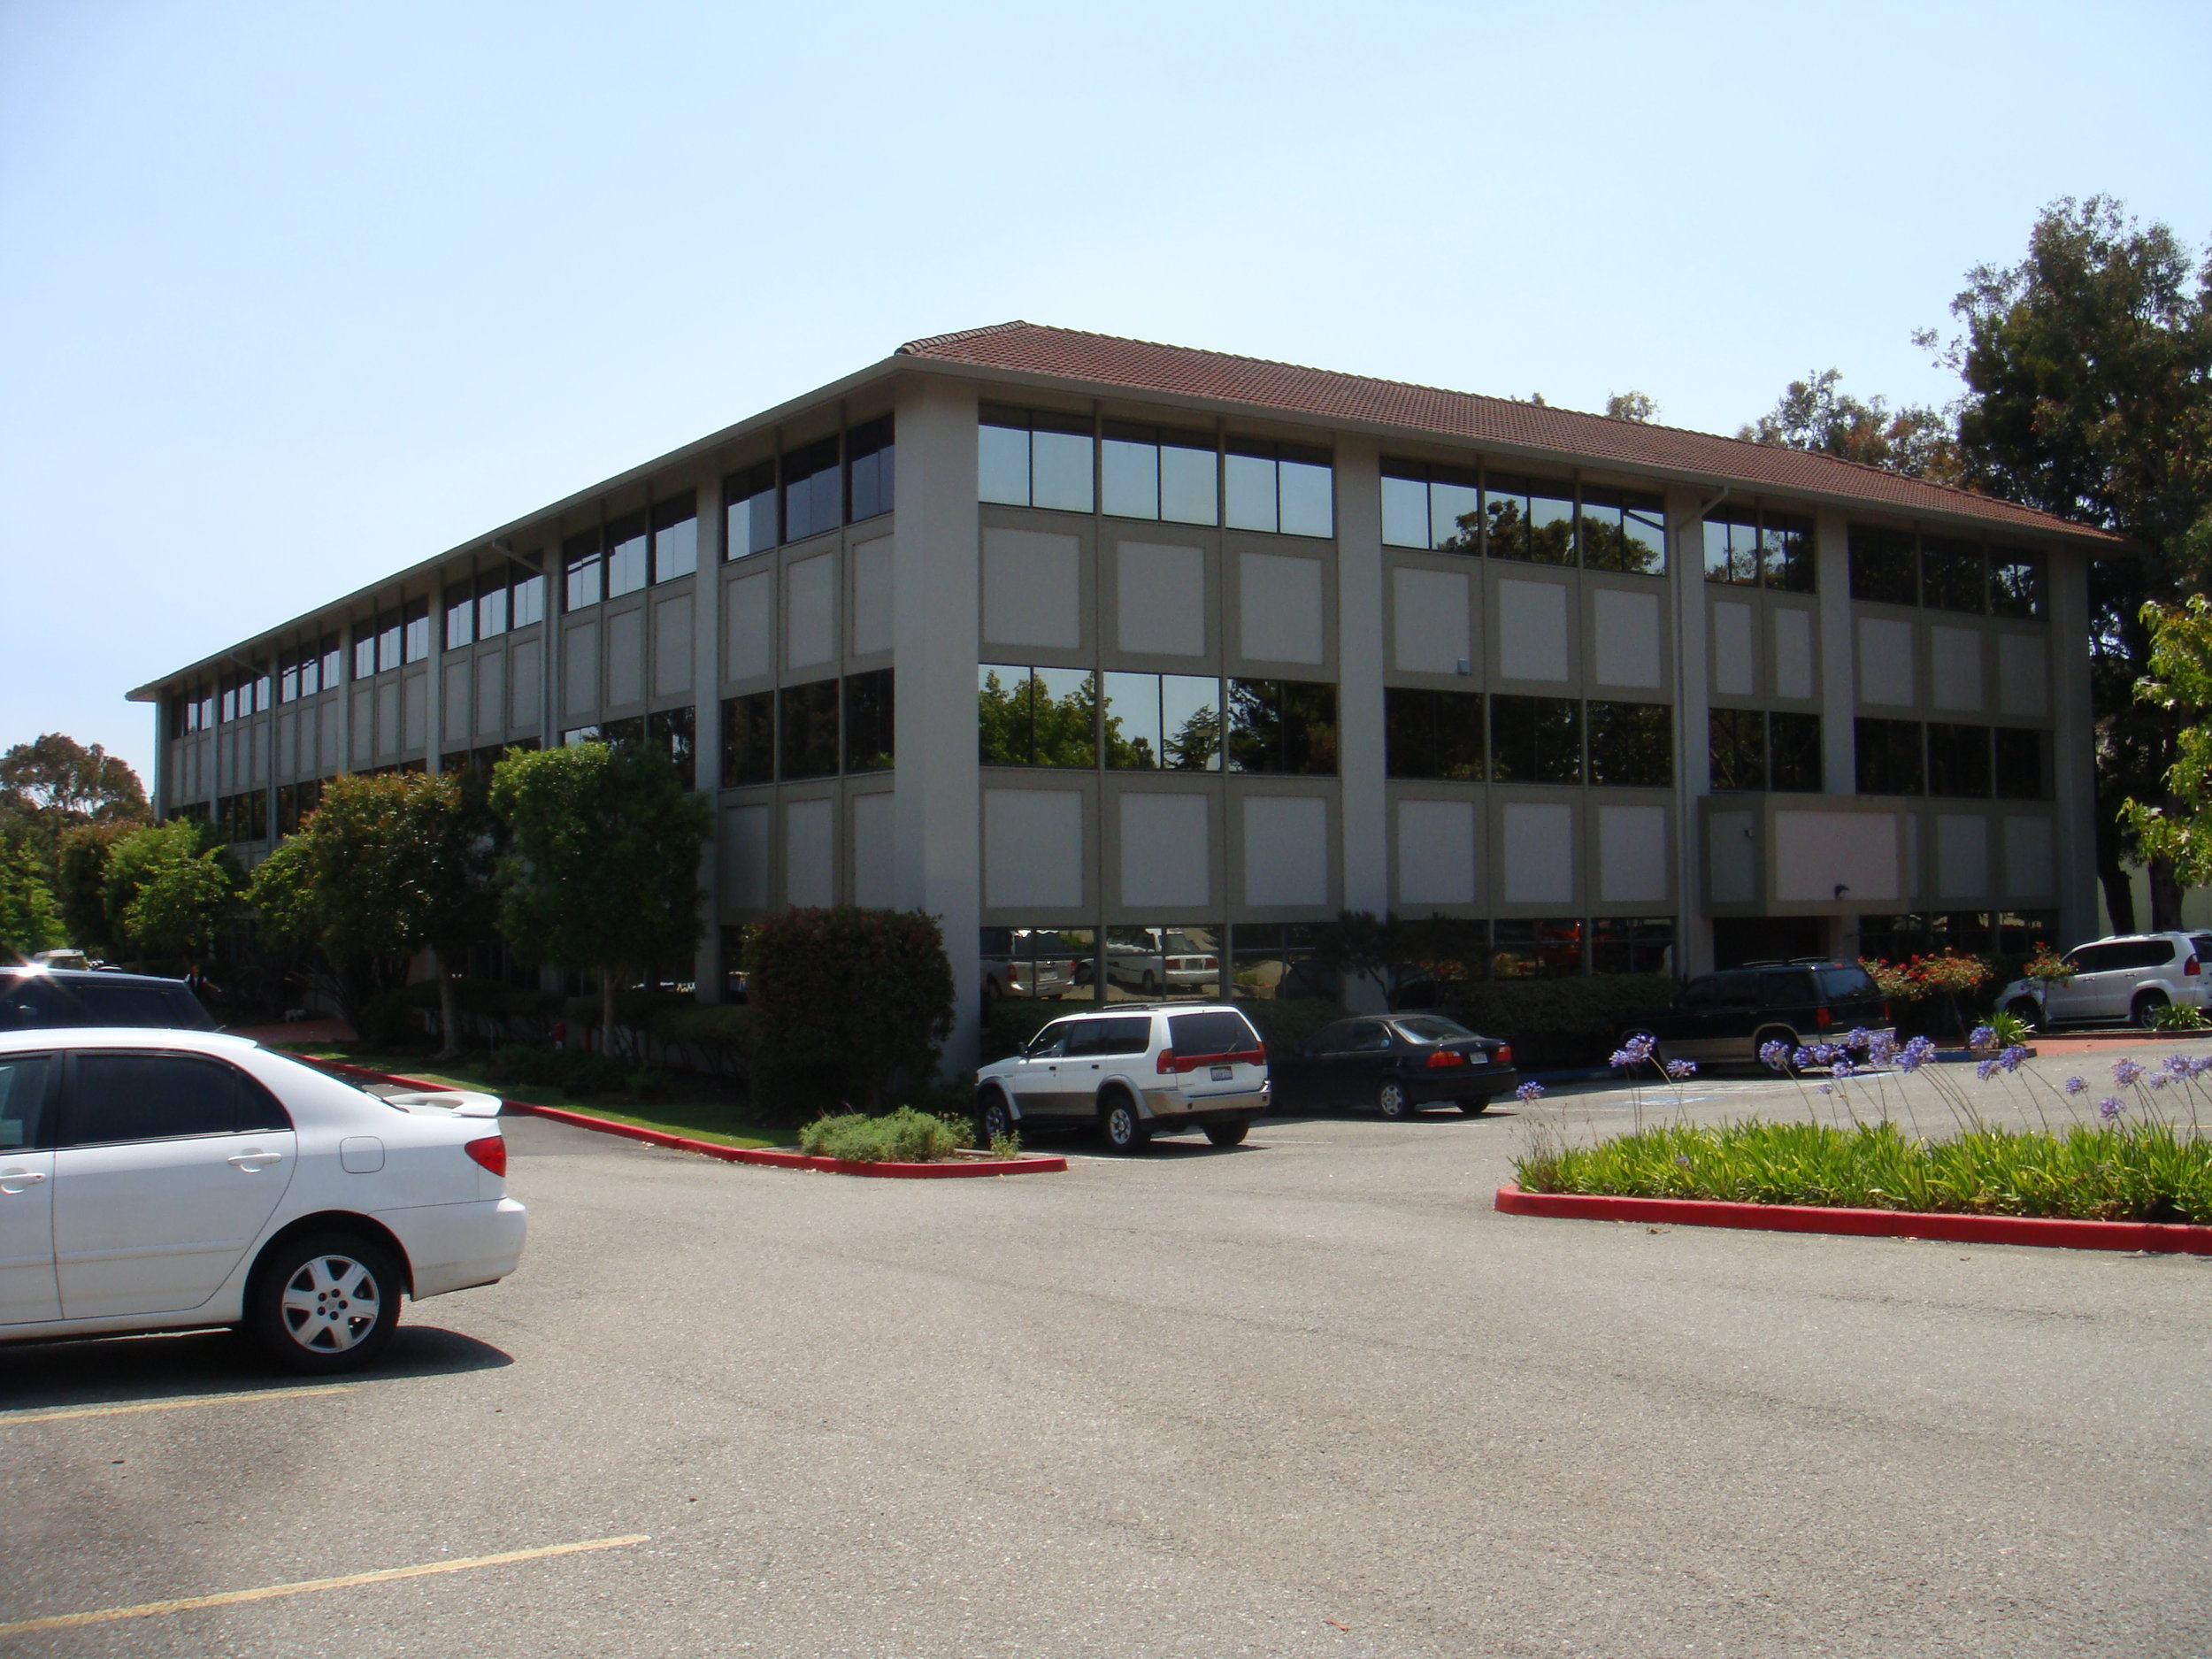 1001 Sneath Lane, San Bruno, CA 94066 36,689 SF Medical Office Building $4,970,000